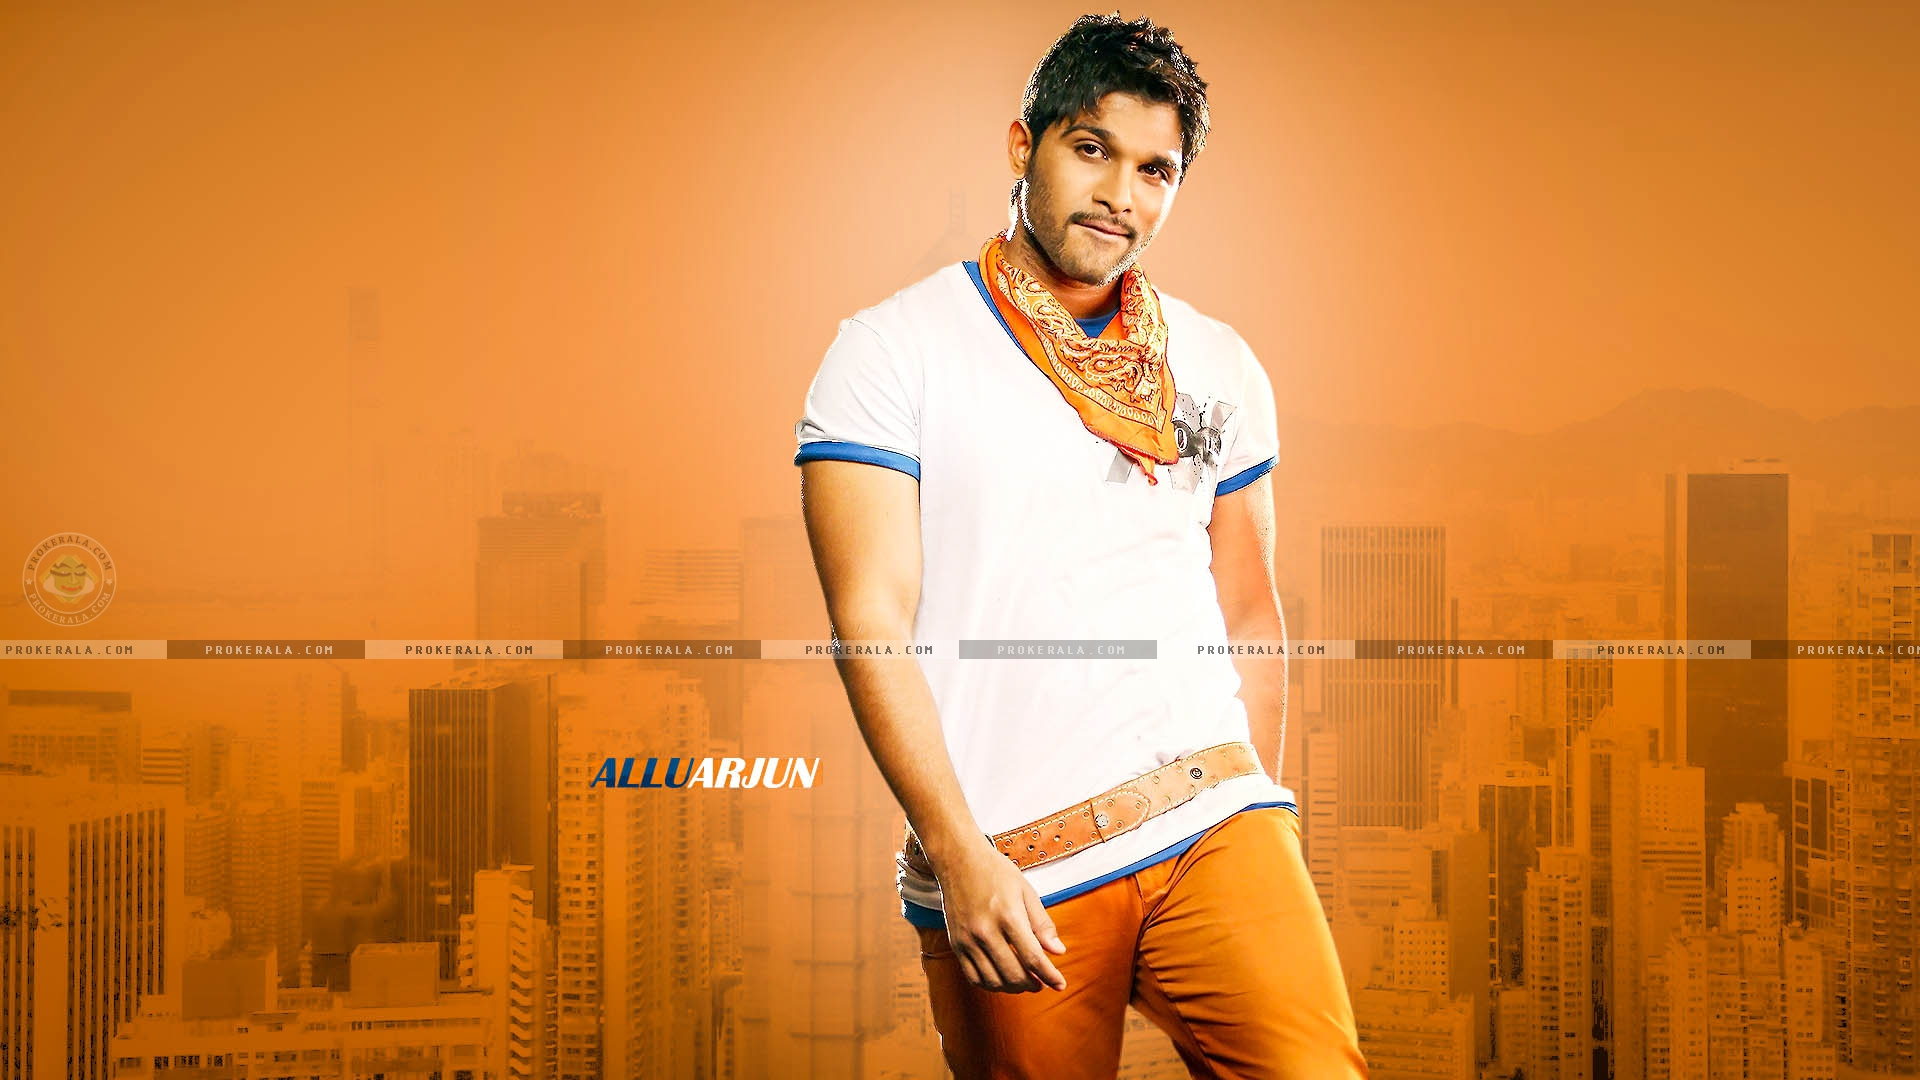 50+ allu arjun images, photos, pics & hd wallpapers download